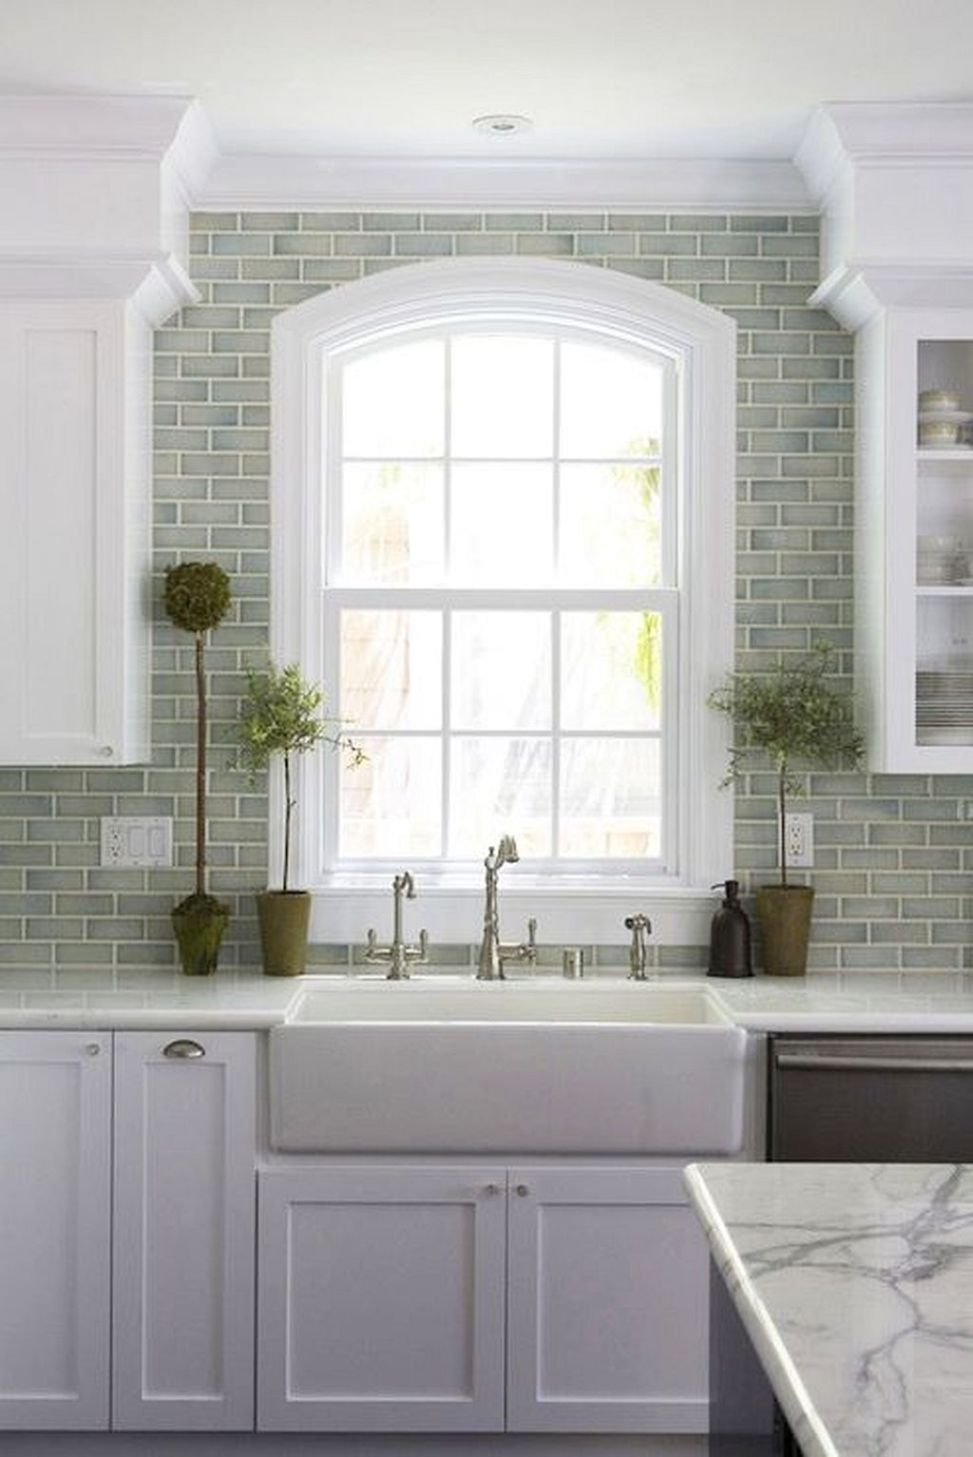 Classy Subway Tile Backsplash For Kitchen Or Bathroom (28) | Kitchen ...